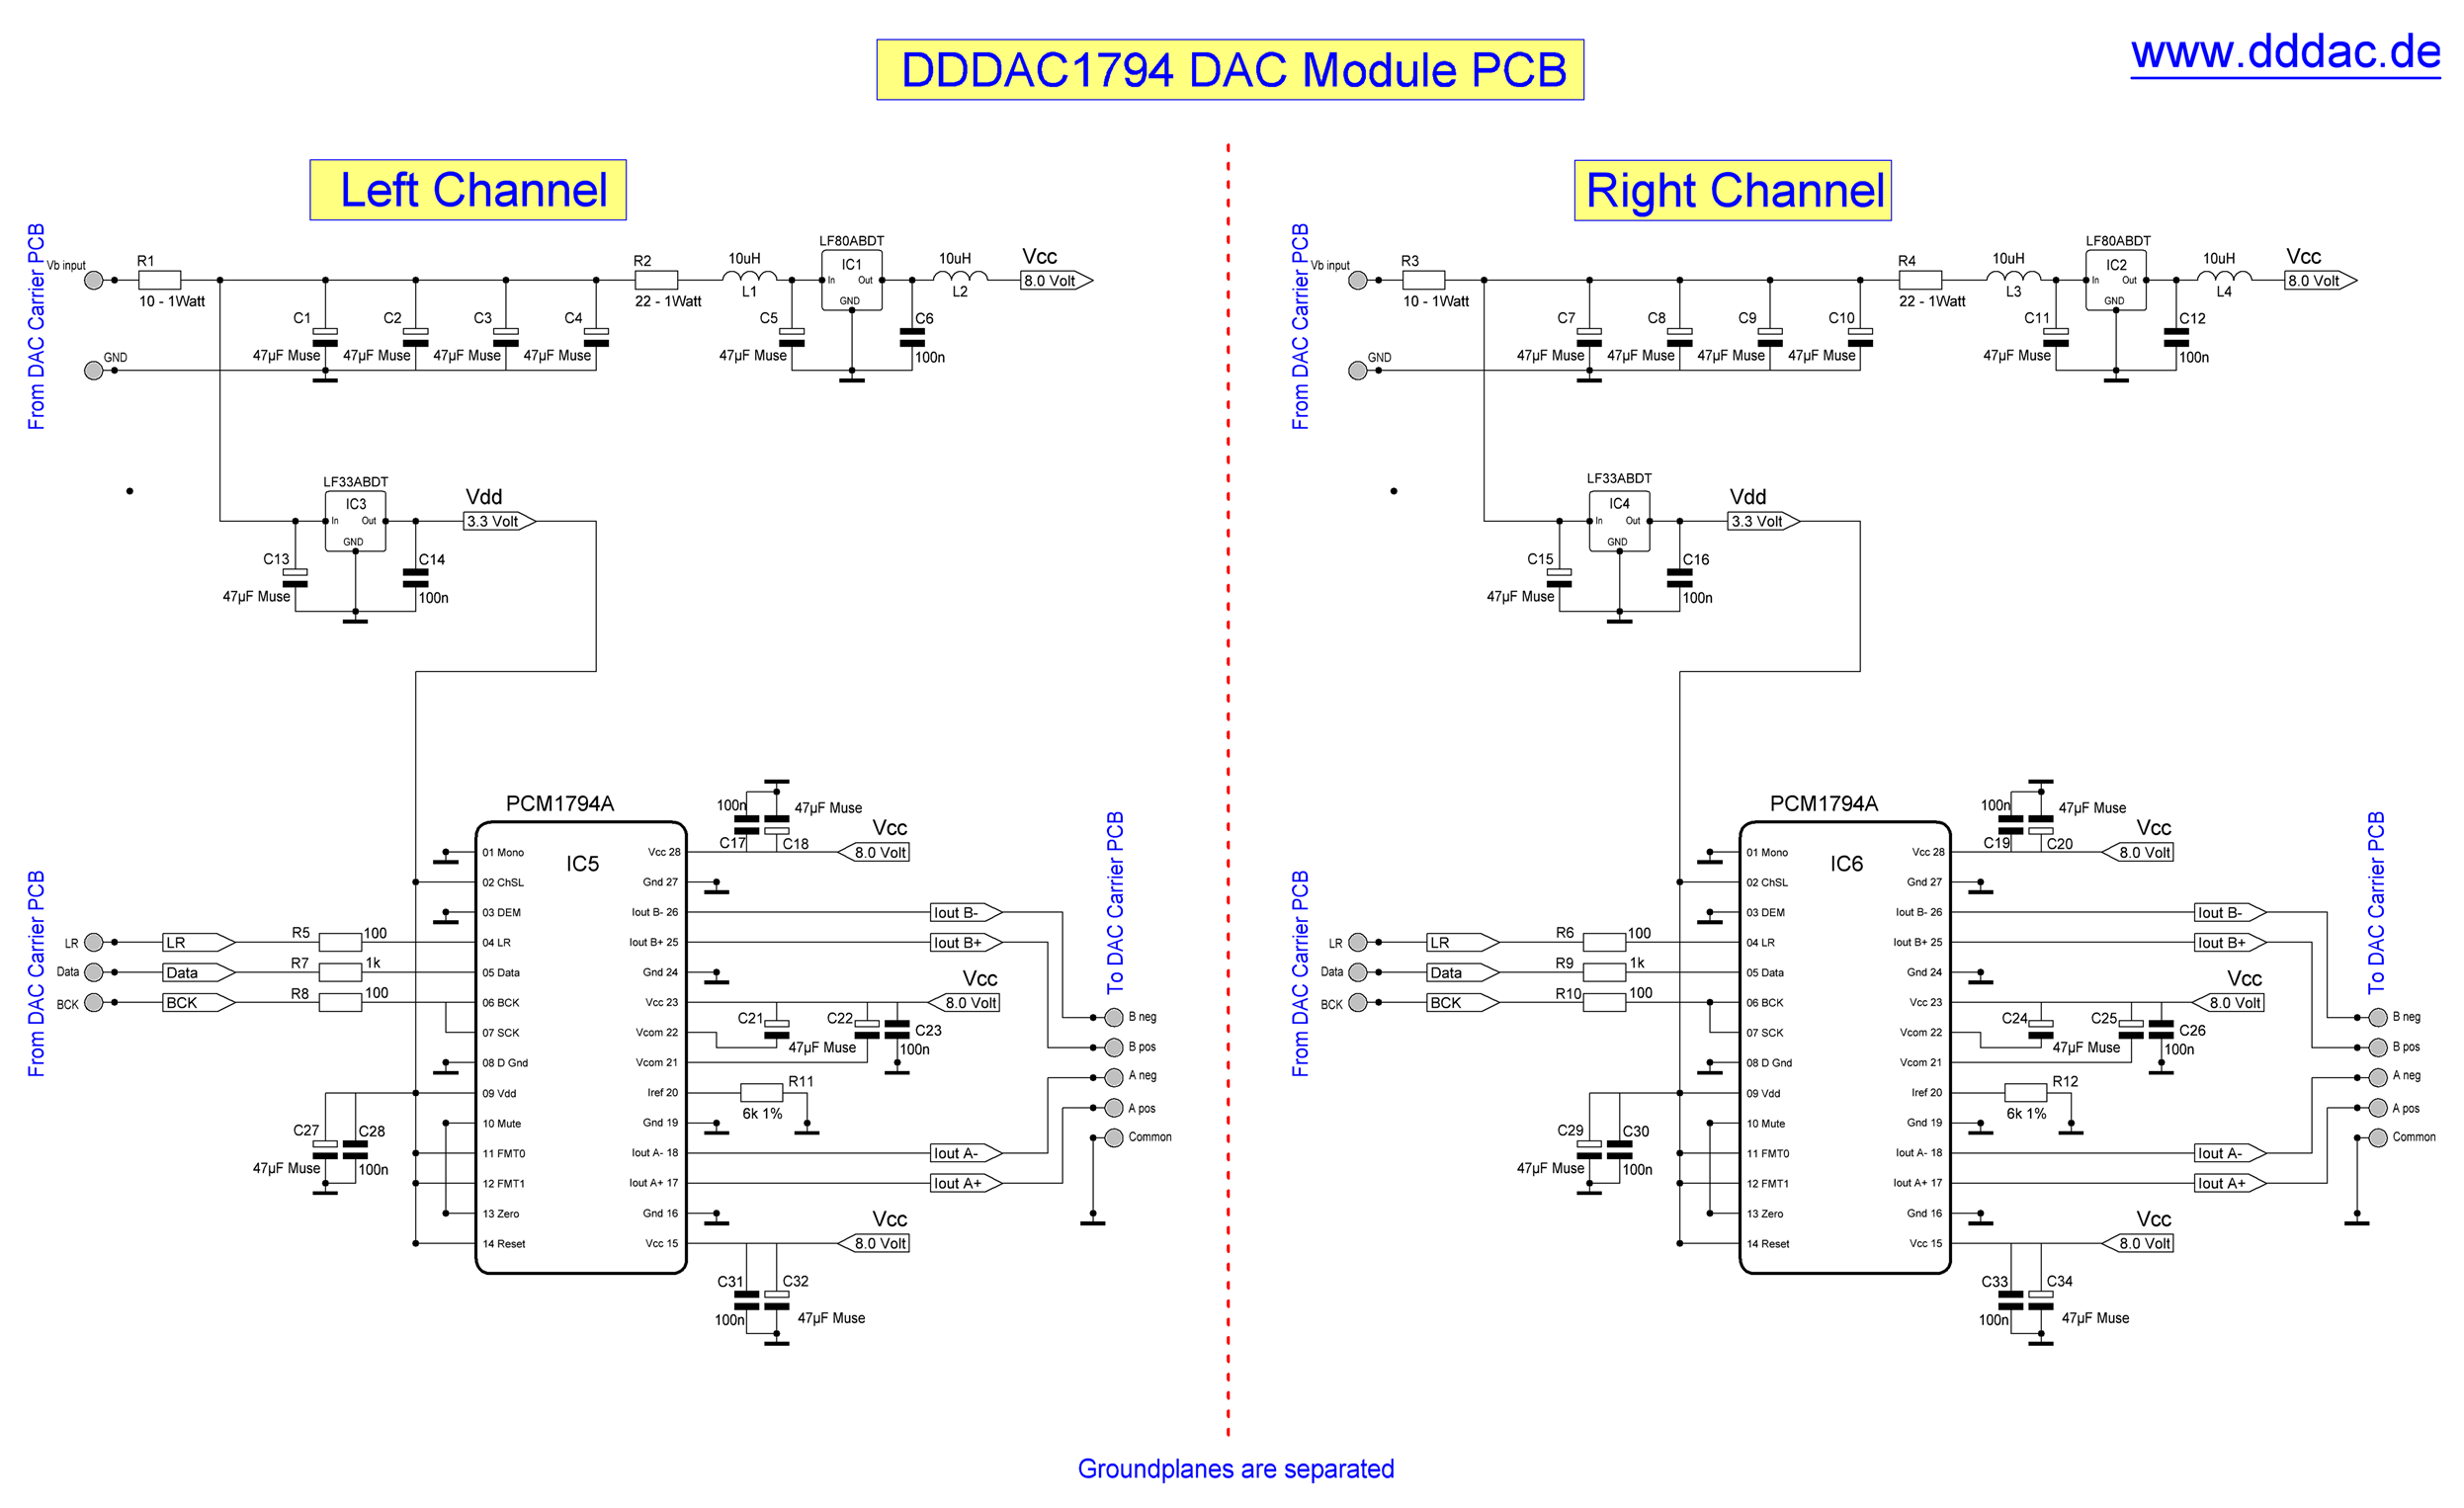 Dddac 1794 Nos Dac Non Oversampling With Pcm1794 No Digital Usb Splitter Schematic Click For Larger Image